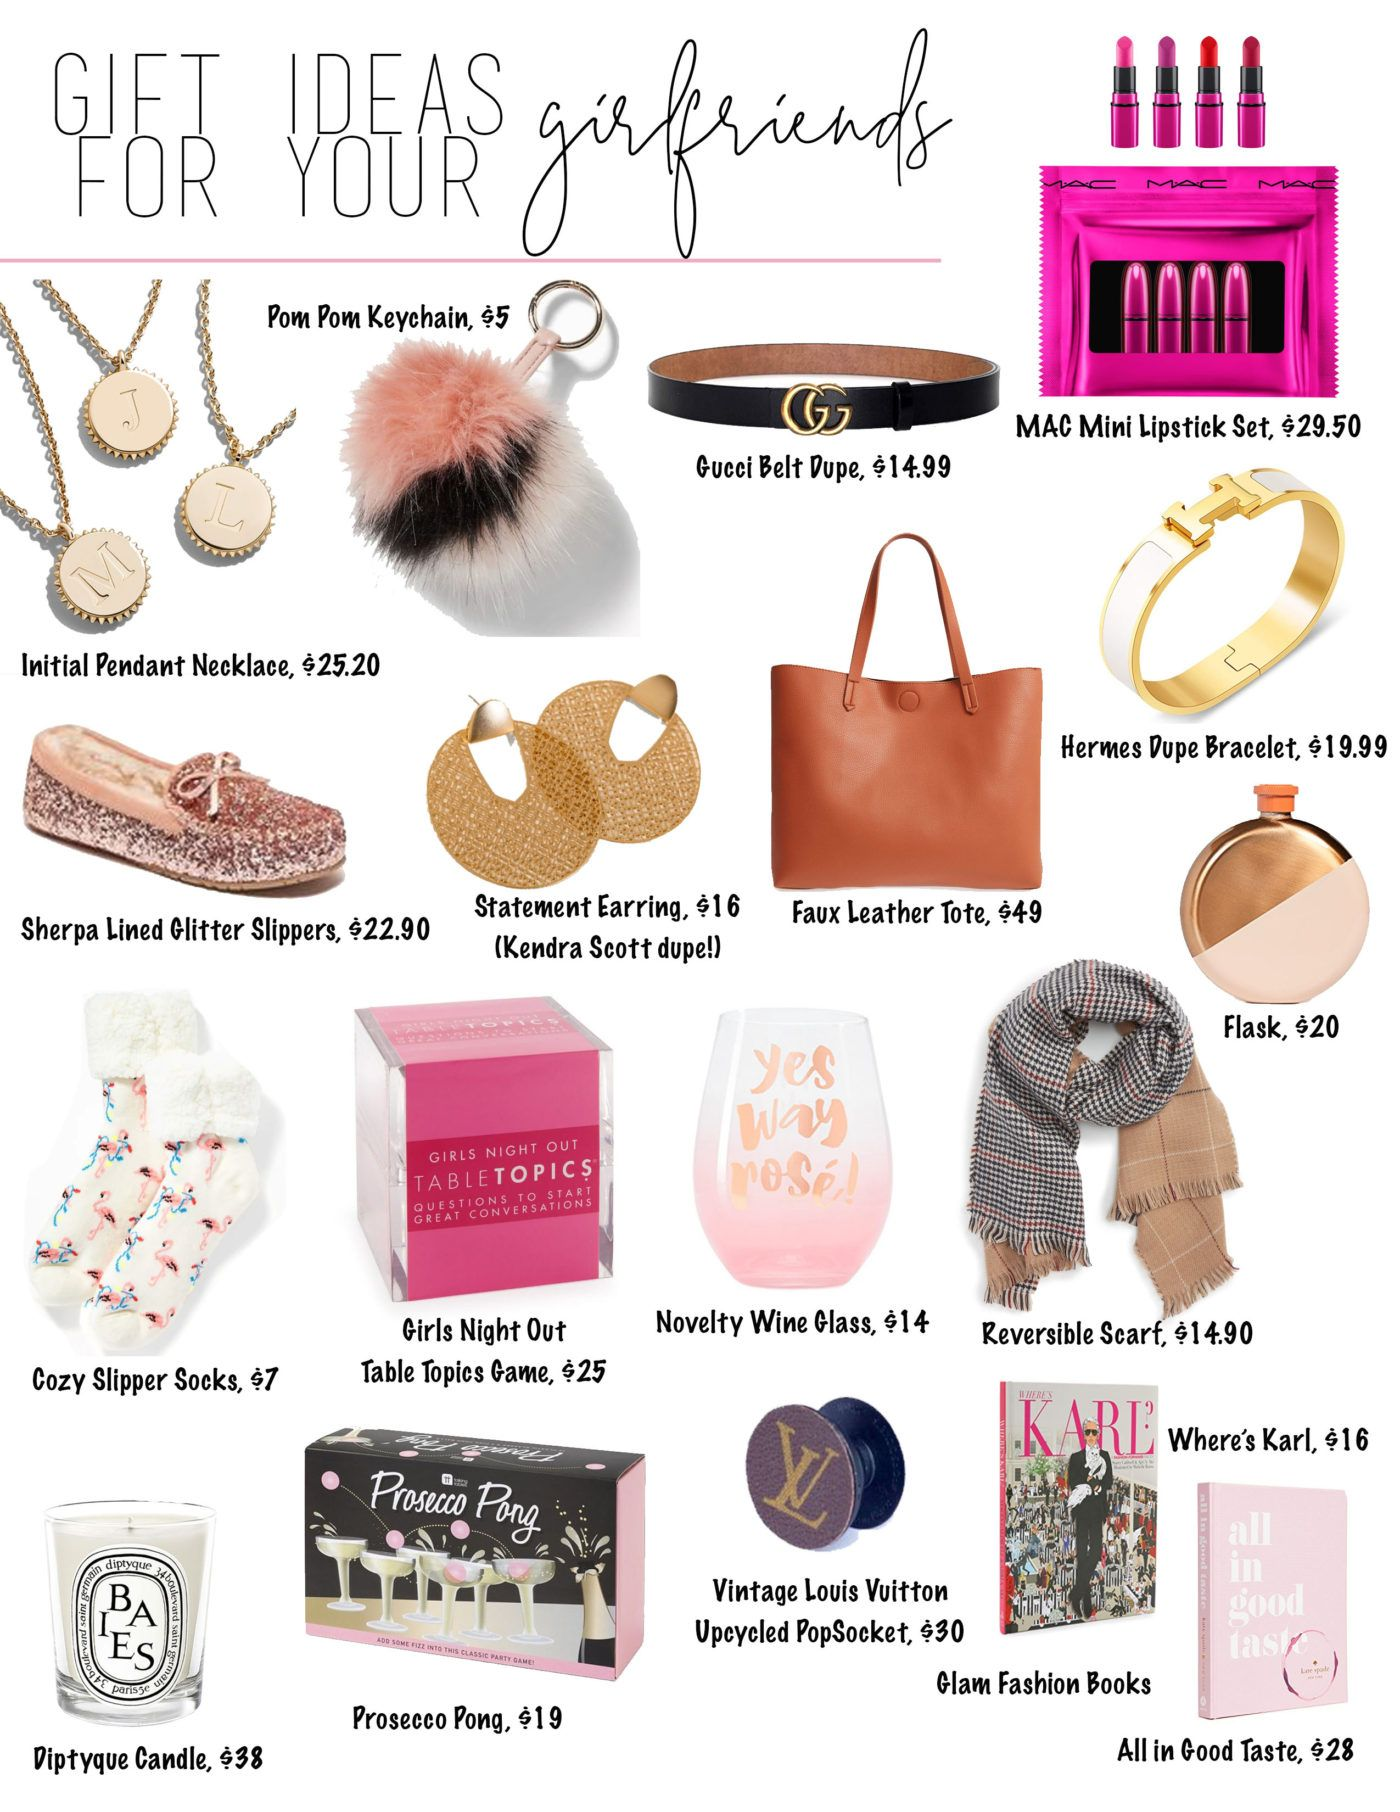 Gift Ideas For Women Gifts For Your Girlfriends Stephanie Pernas Girlfriend Gifts Gifts For Your Girlfriend Affordable Christmas Gifts